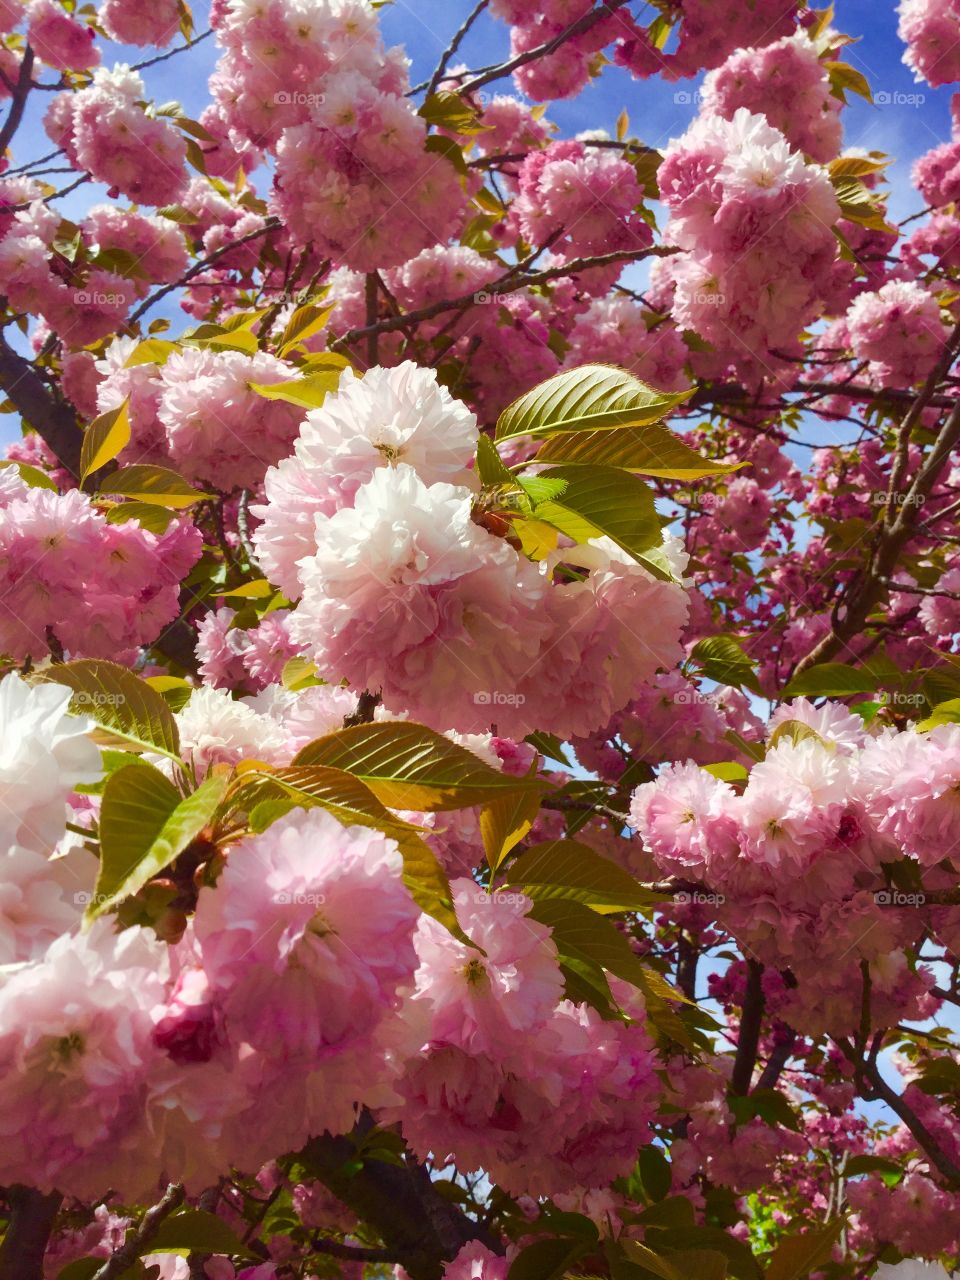 The beauty of the cherry trees